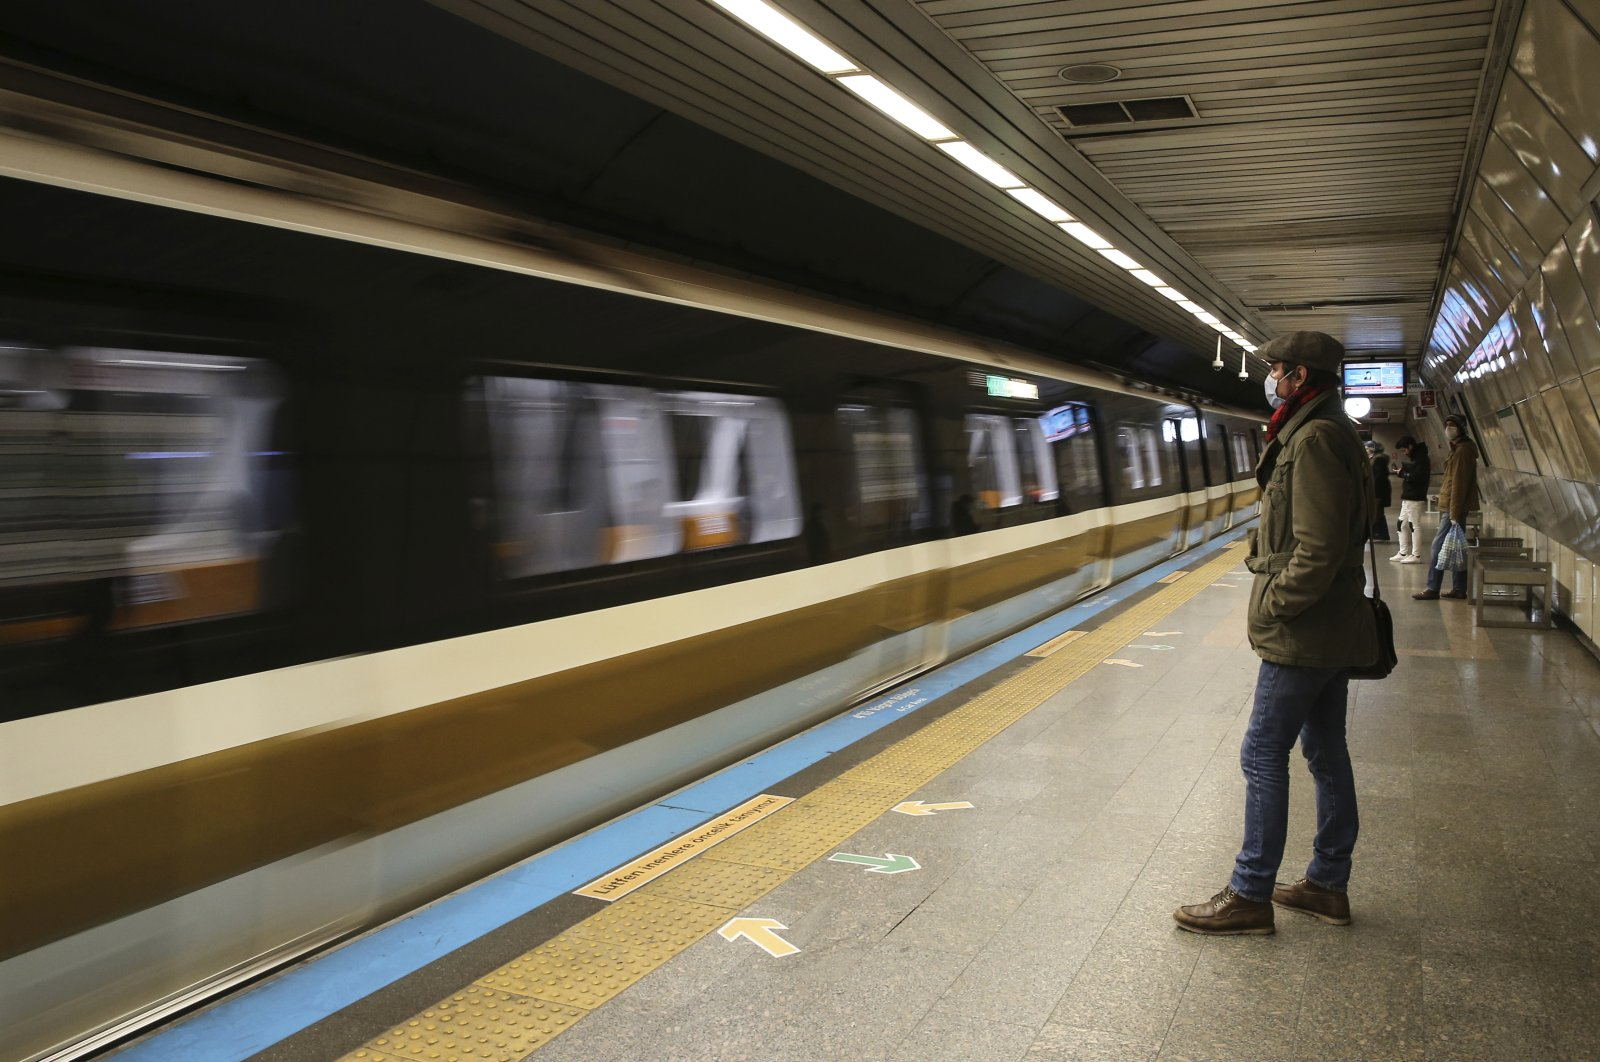 A commuter wears a mask in an underground station during the coronavirus outbreak in central Istanbul, Friday, April 3, 2020. (AP Photo)